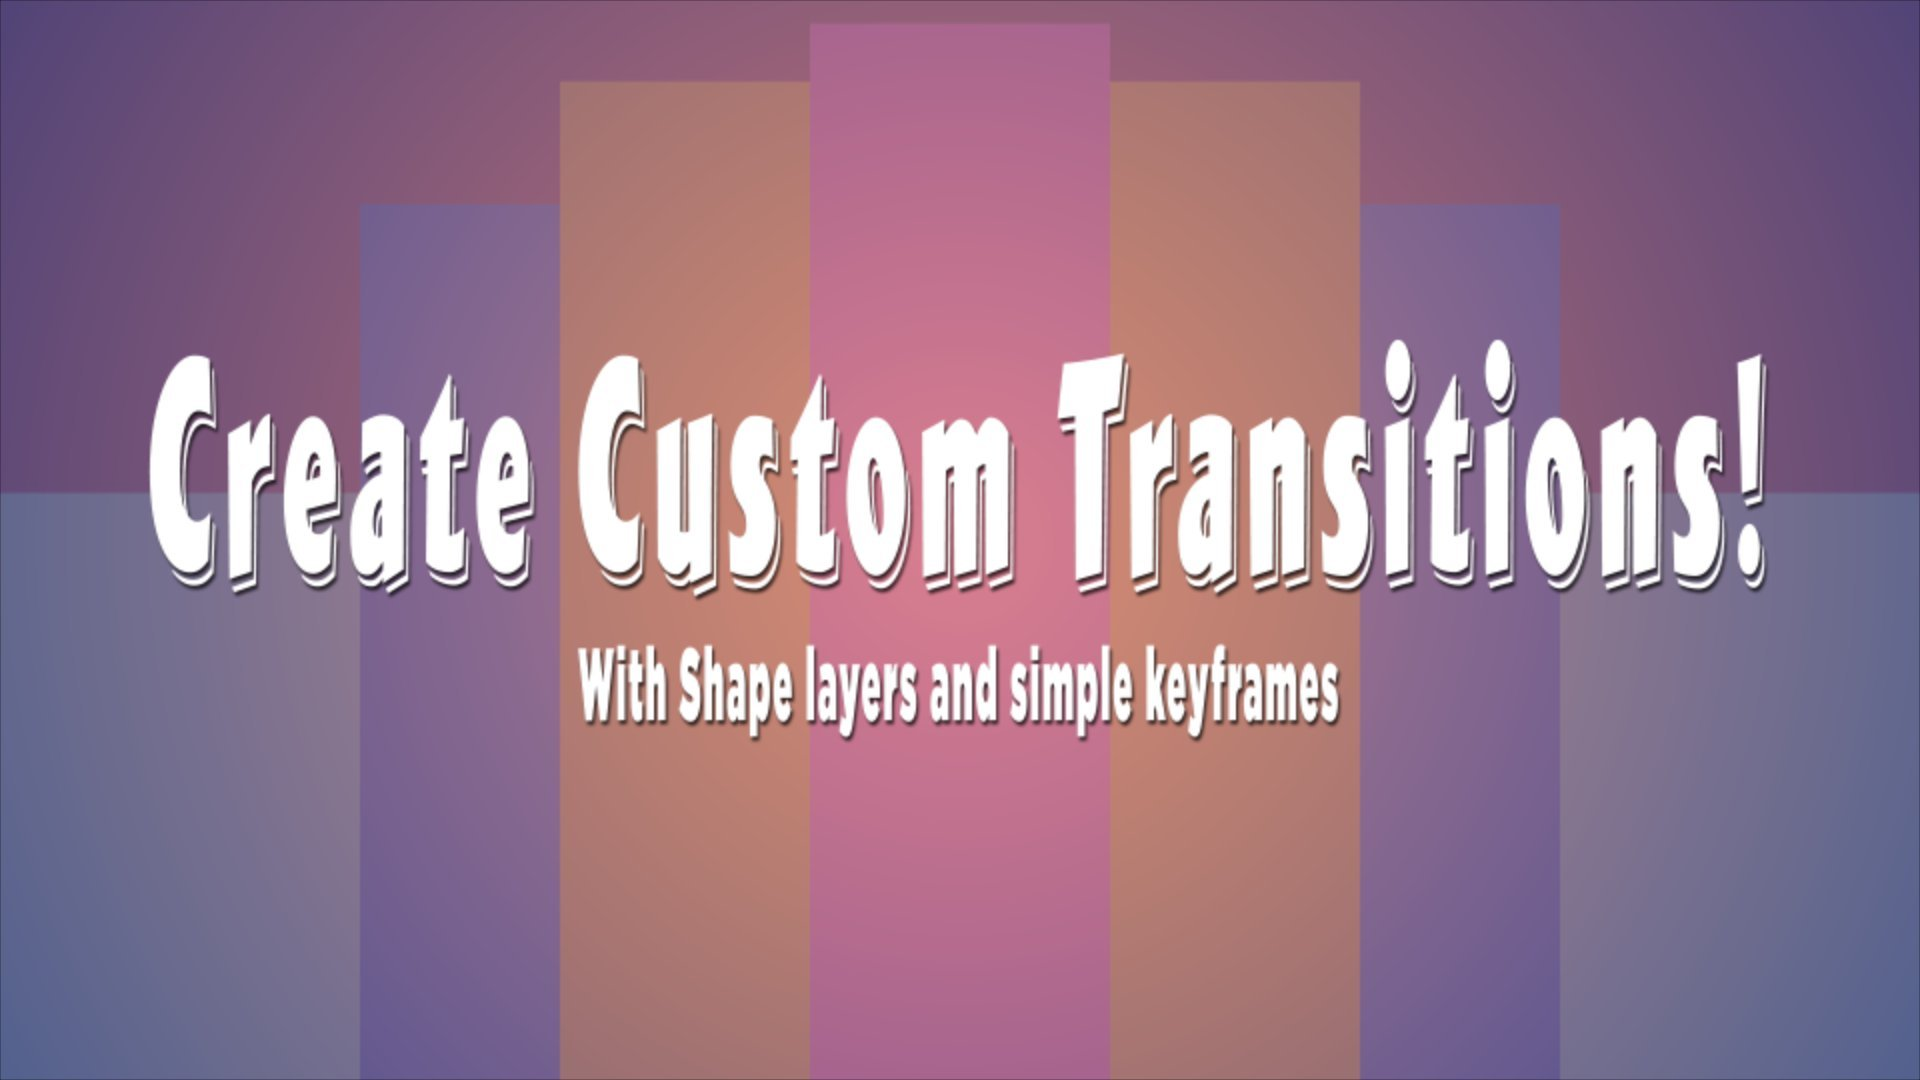 After Effects for Beginners: Create Custom Transitions! | Duncan